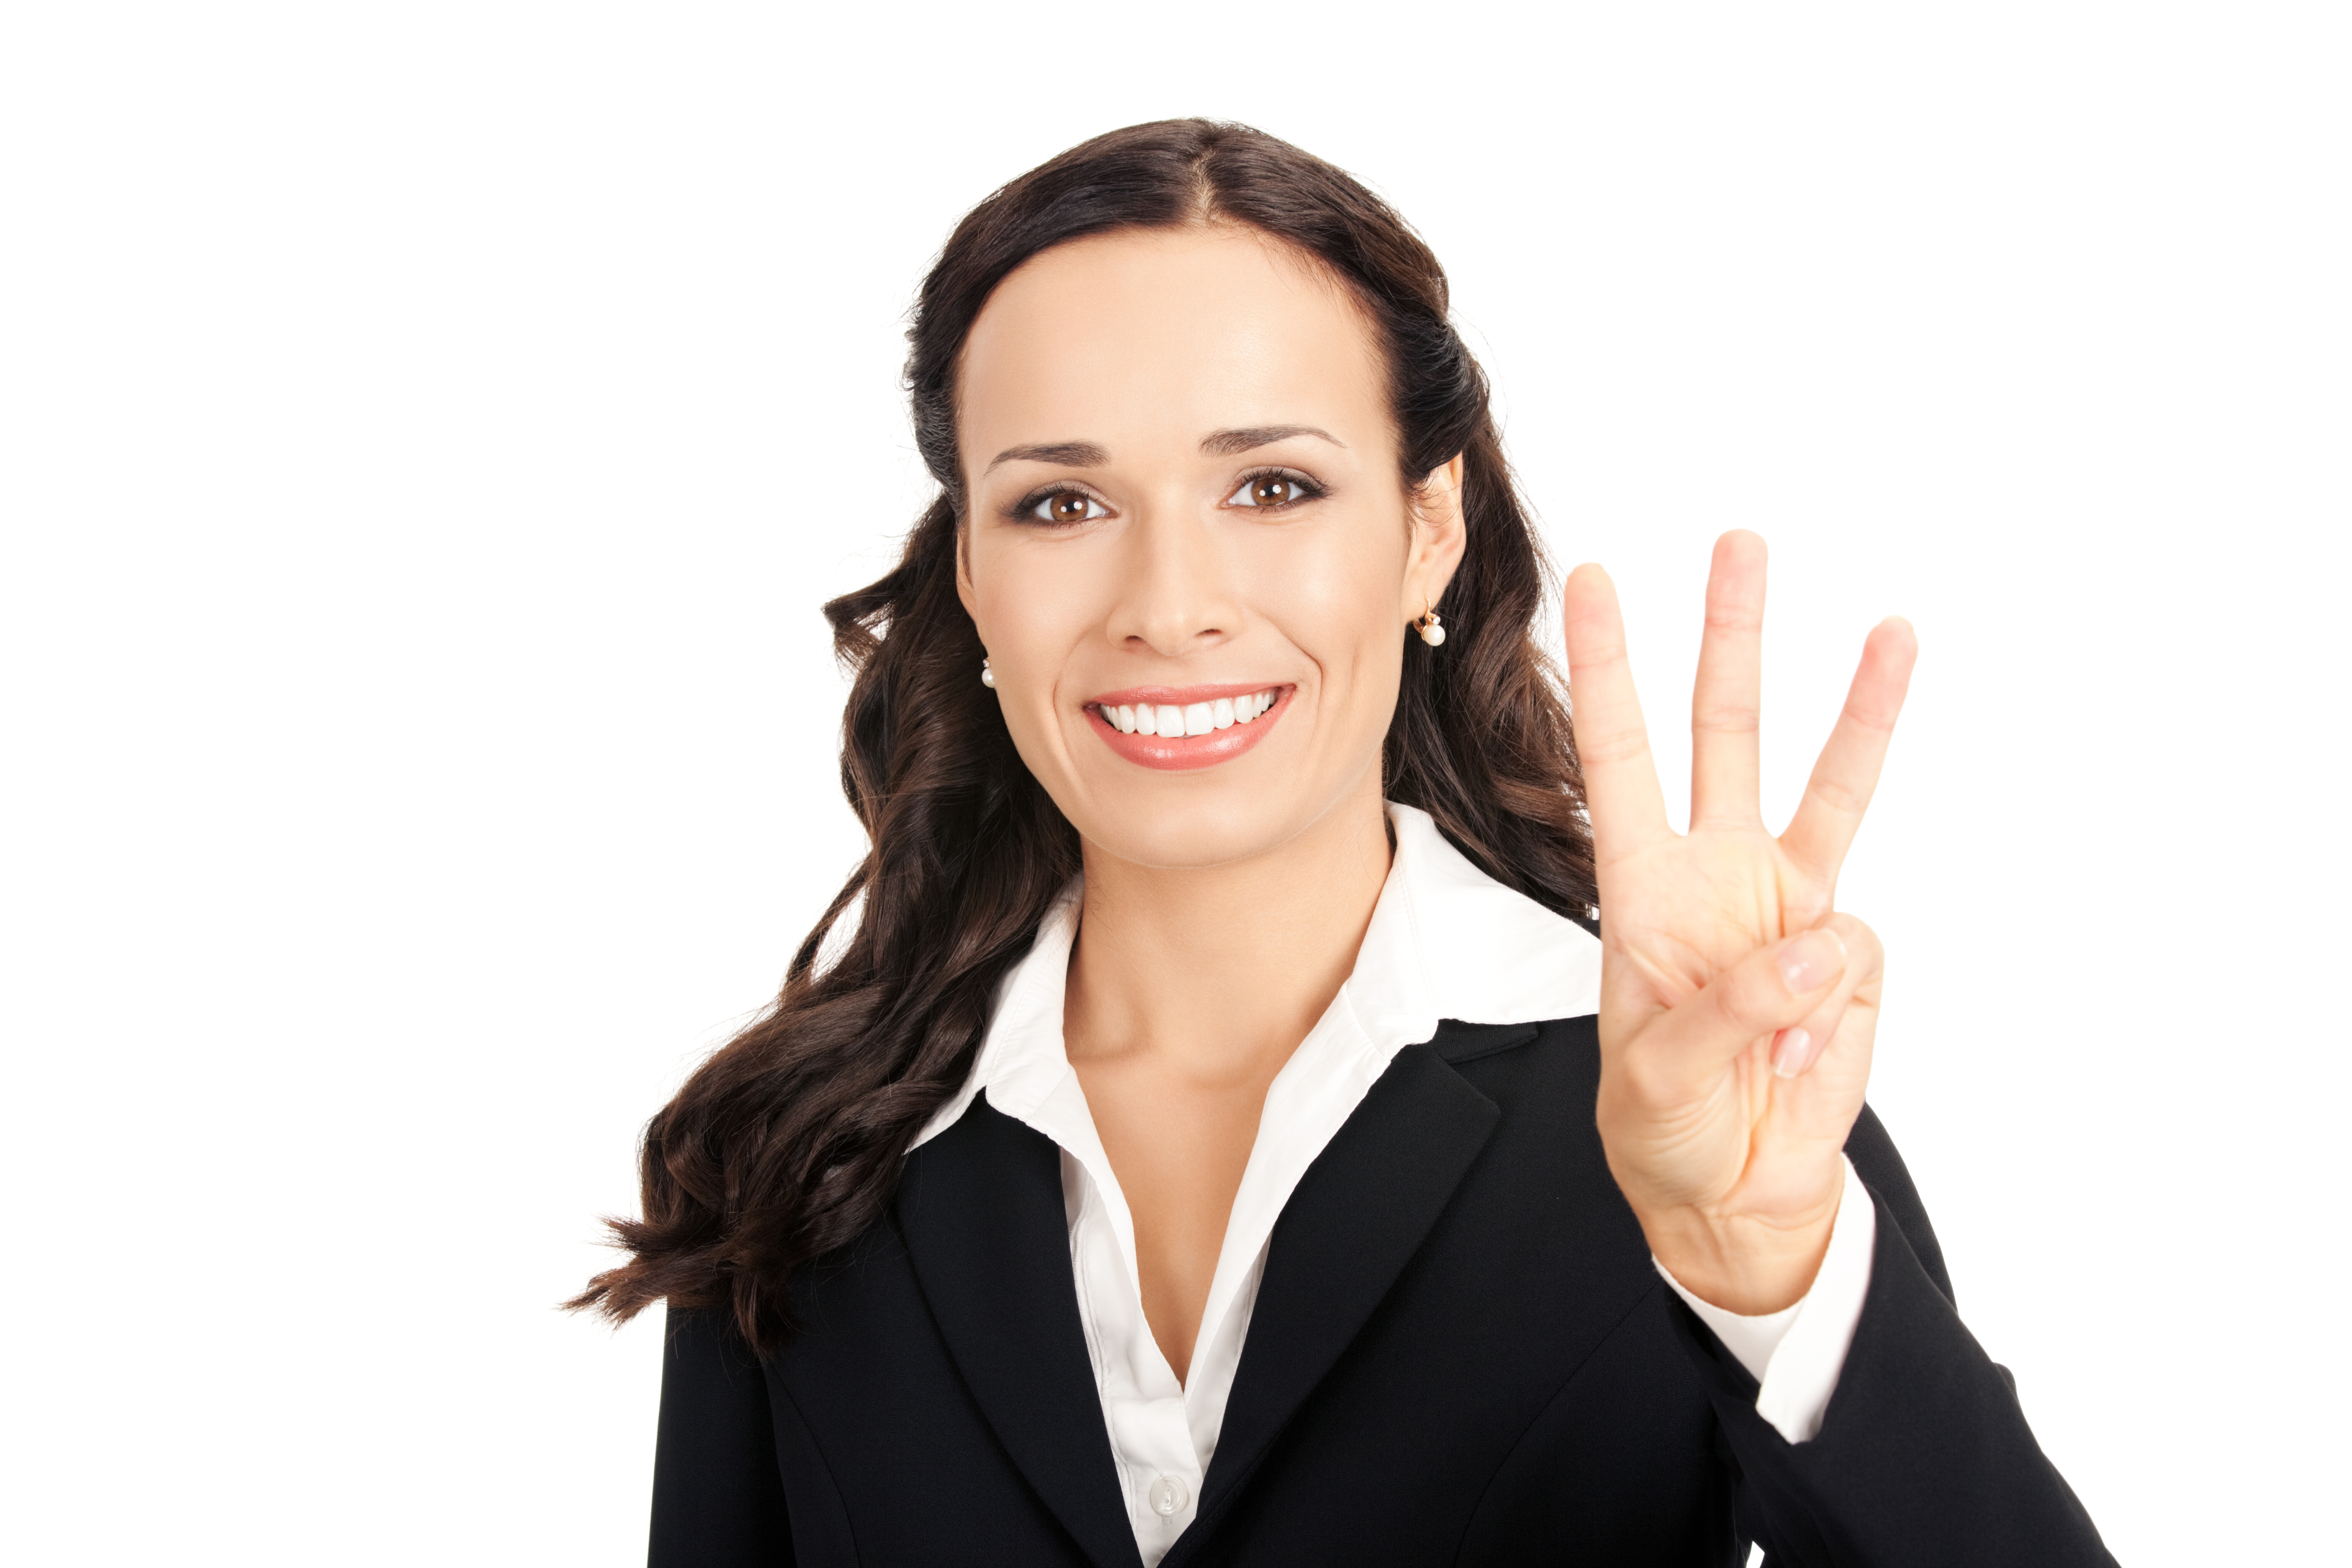 Businesswoman showing three fingers, on white